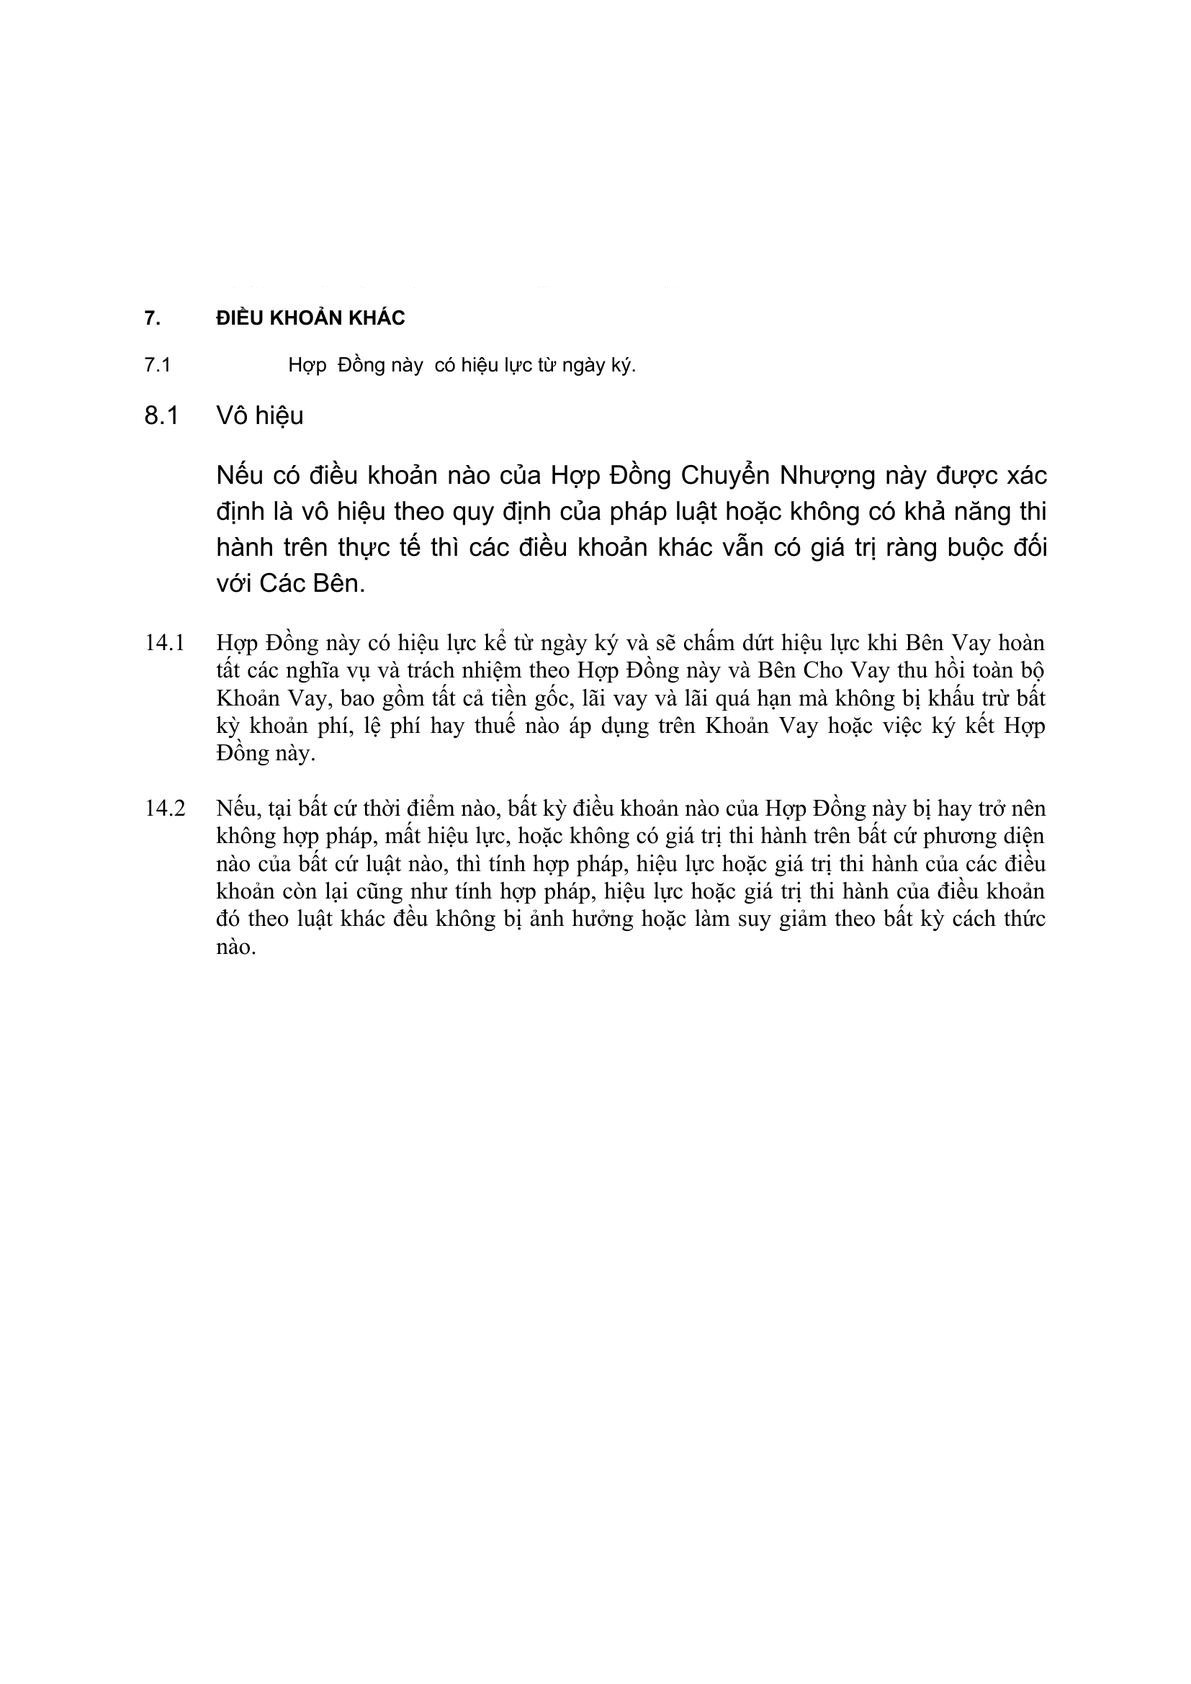 Subsciption agreement (option of buying the share)-3